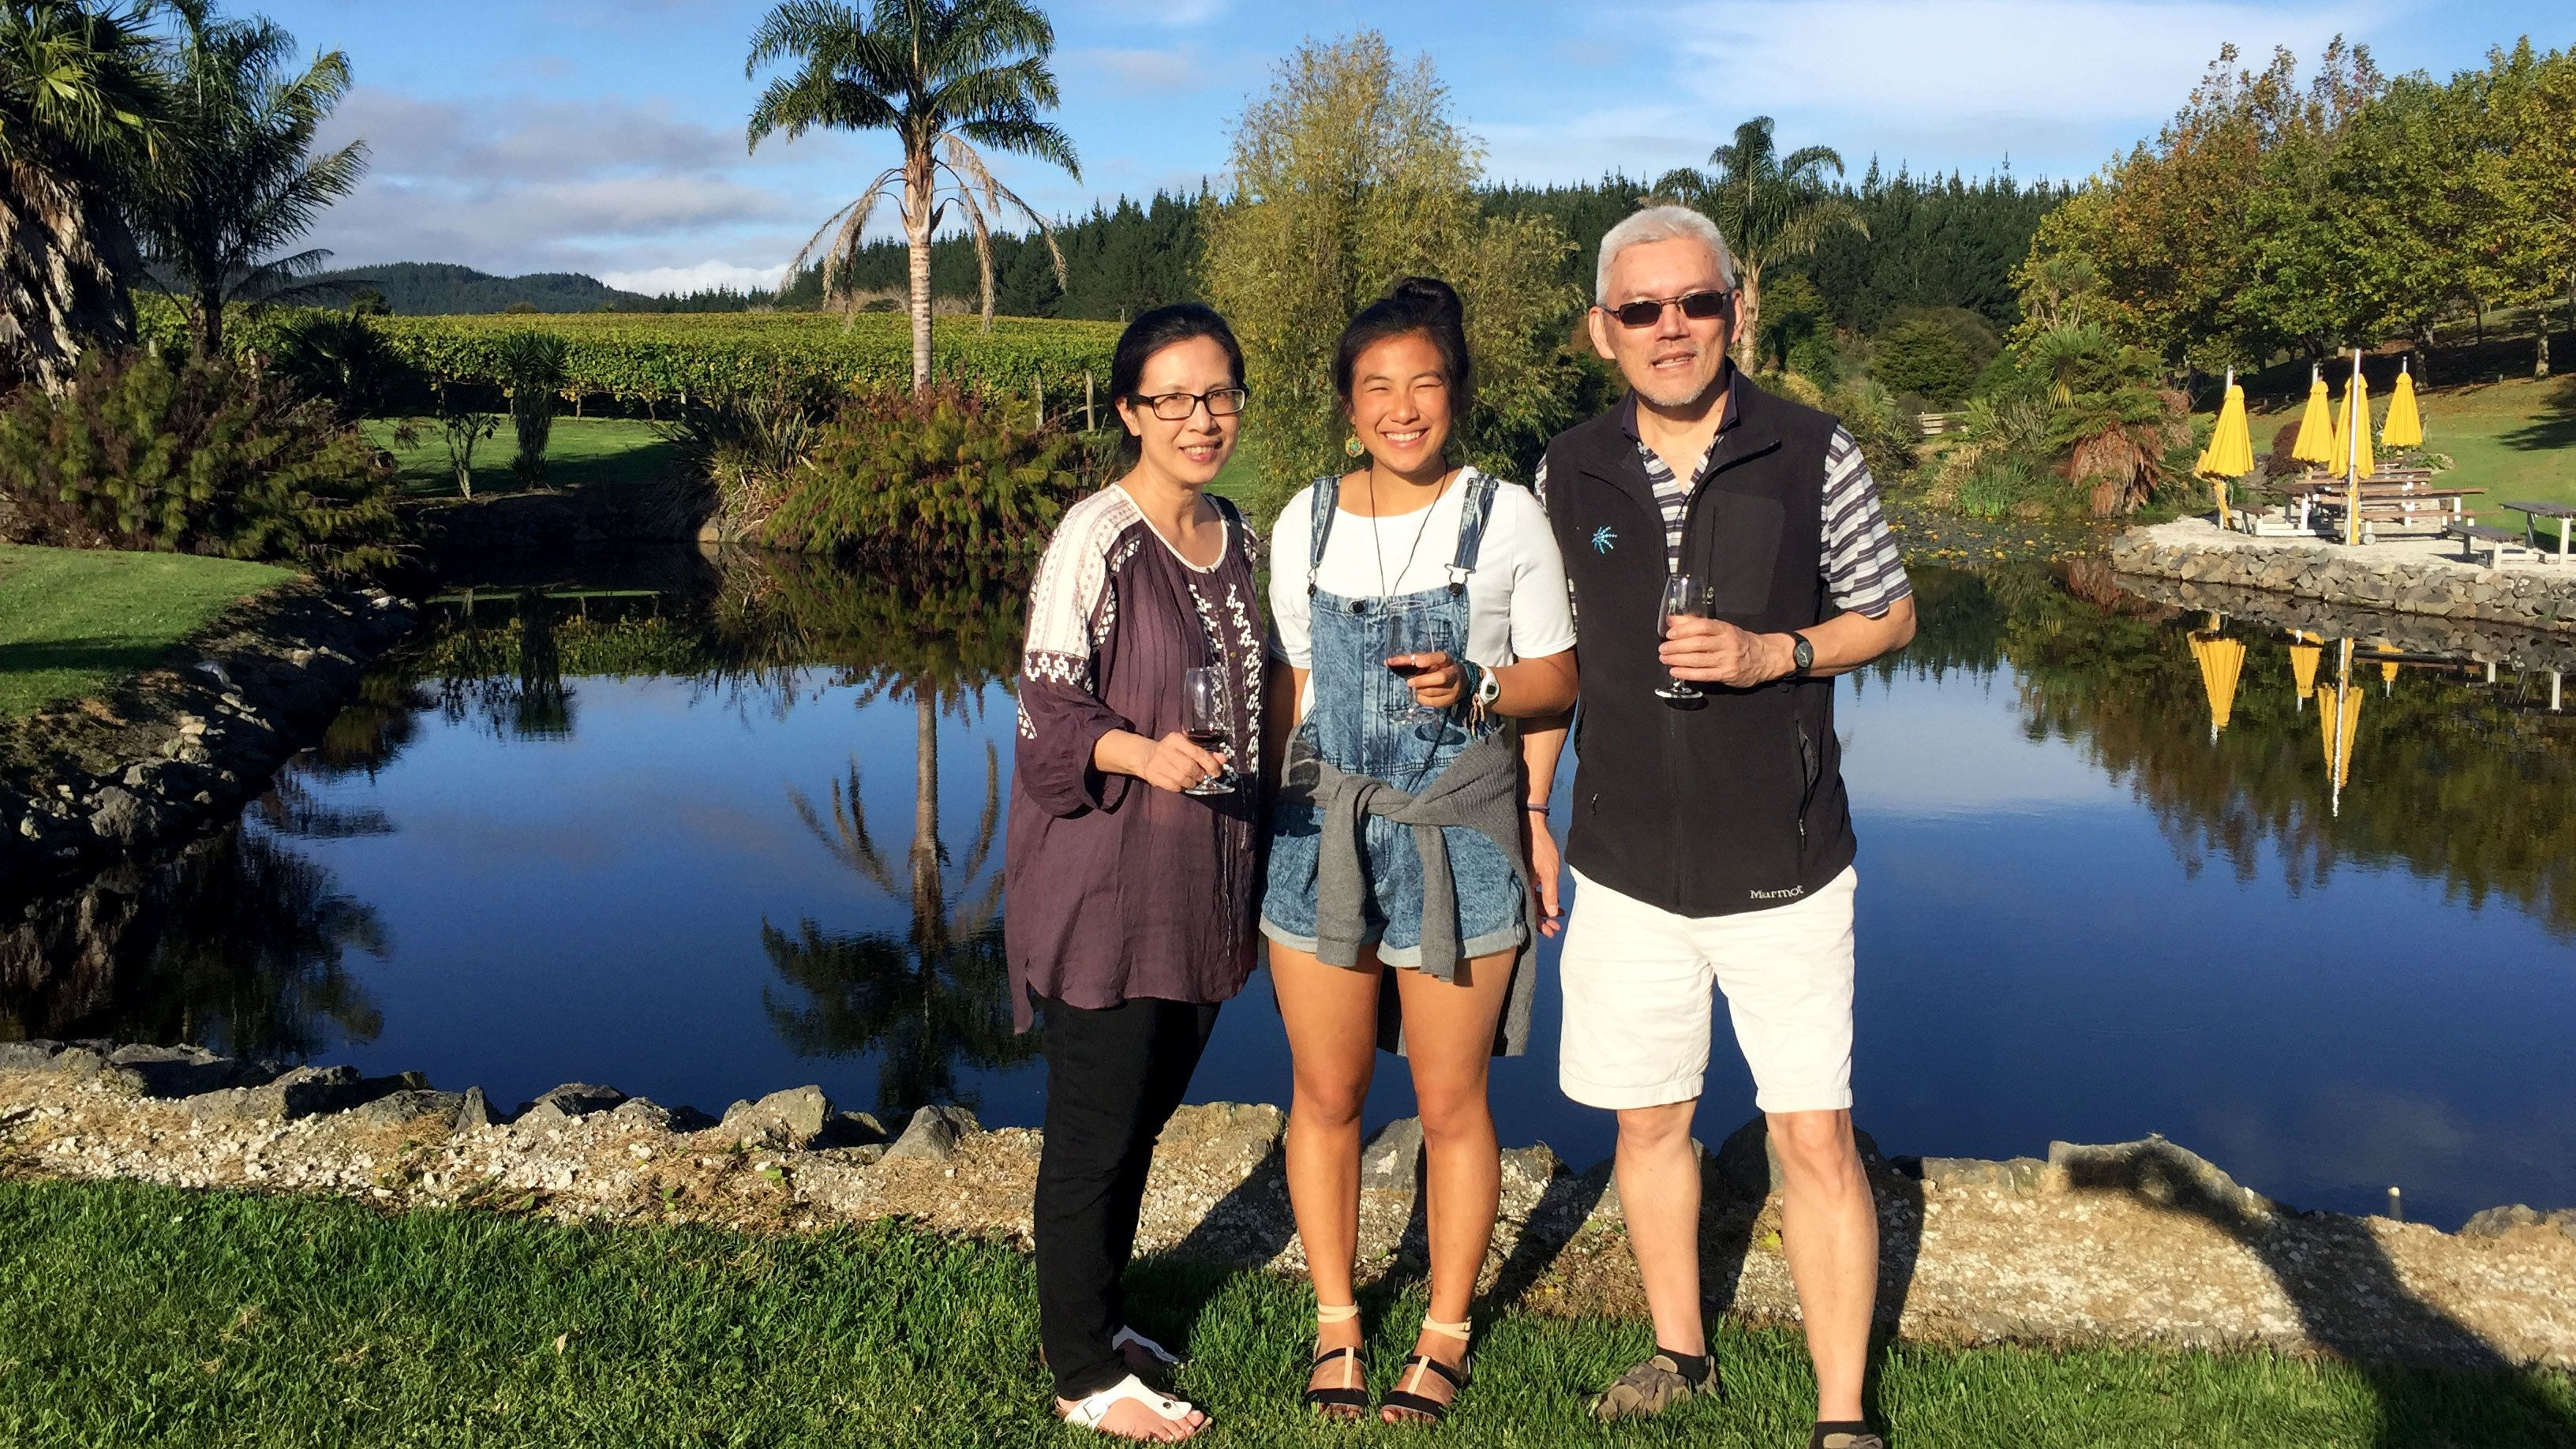 Family standing near pond at winery in Auckland